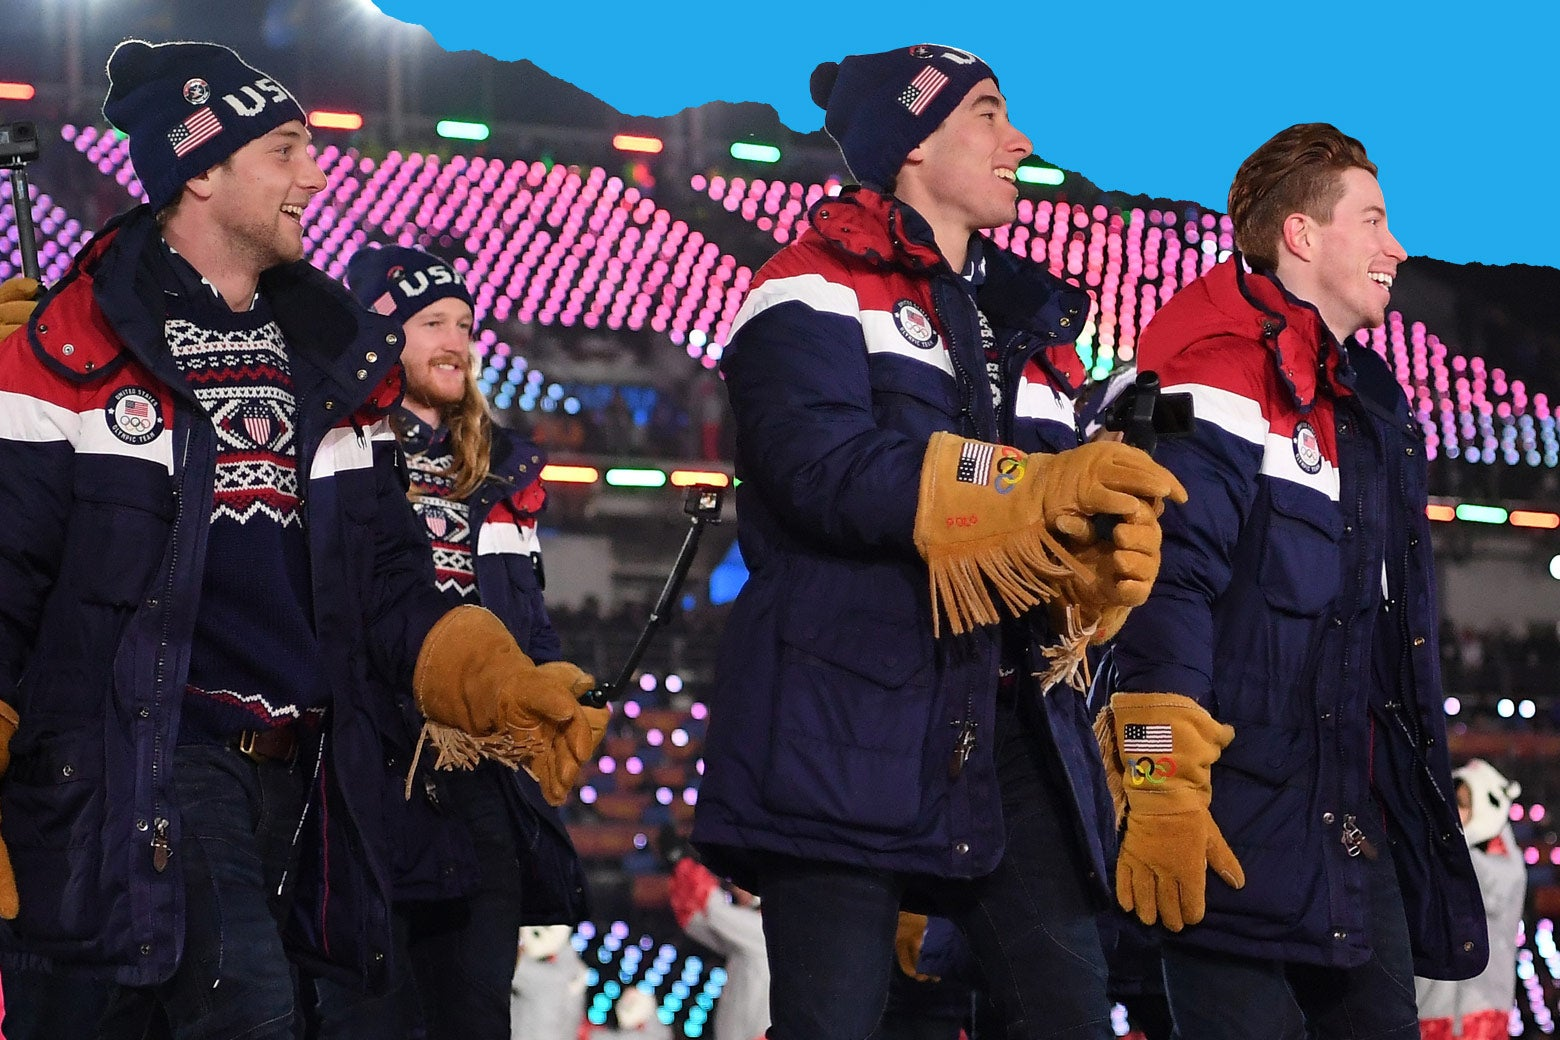 United States athletes take part during the Opening Ceremony of the PyeongChang 2018 Winter Olympic Games at PyeongChang Olympic Stadium on February 9, 2018 in Pyeongchang-gun, South Korea.